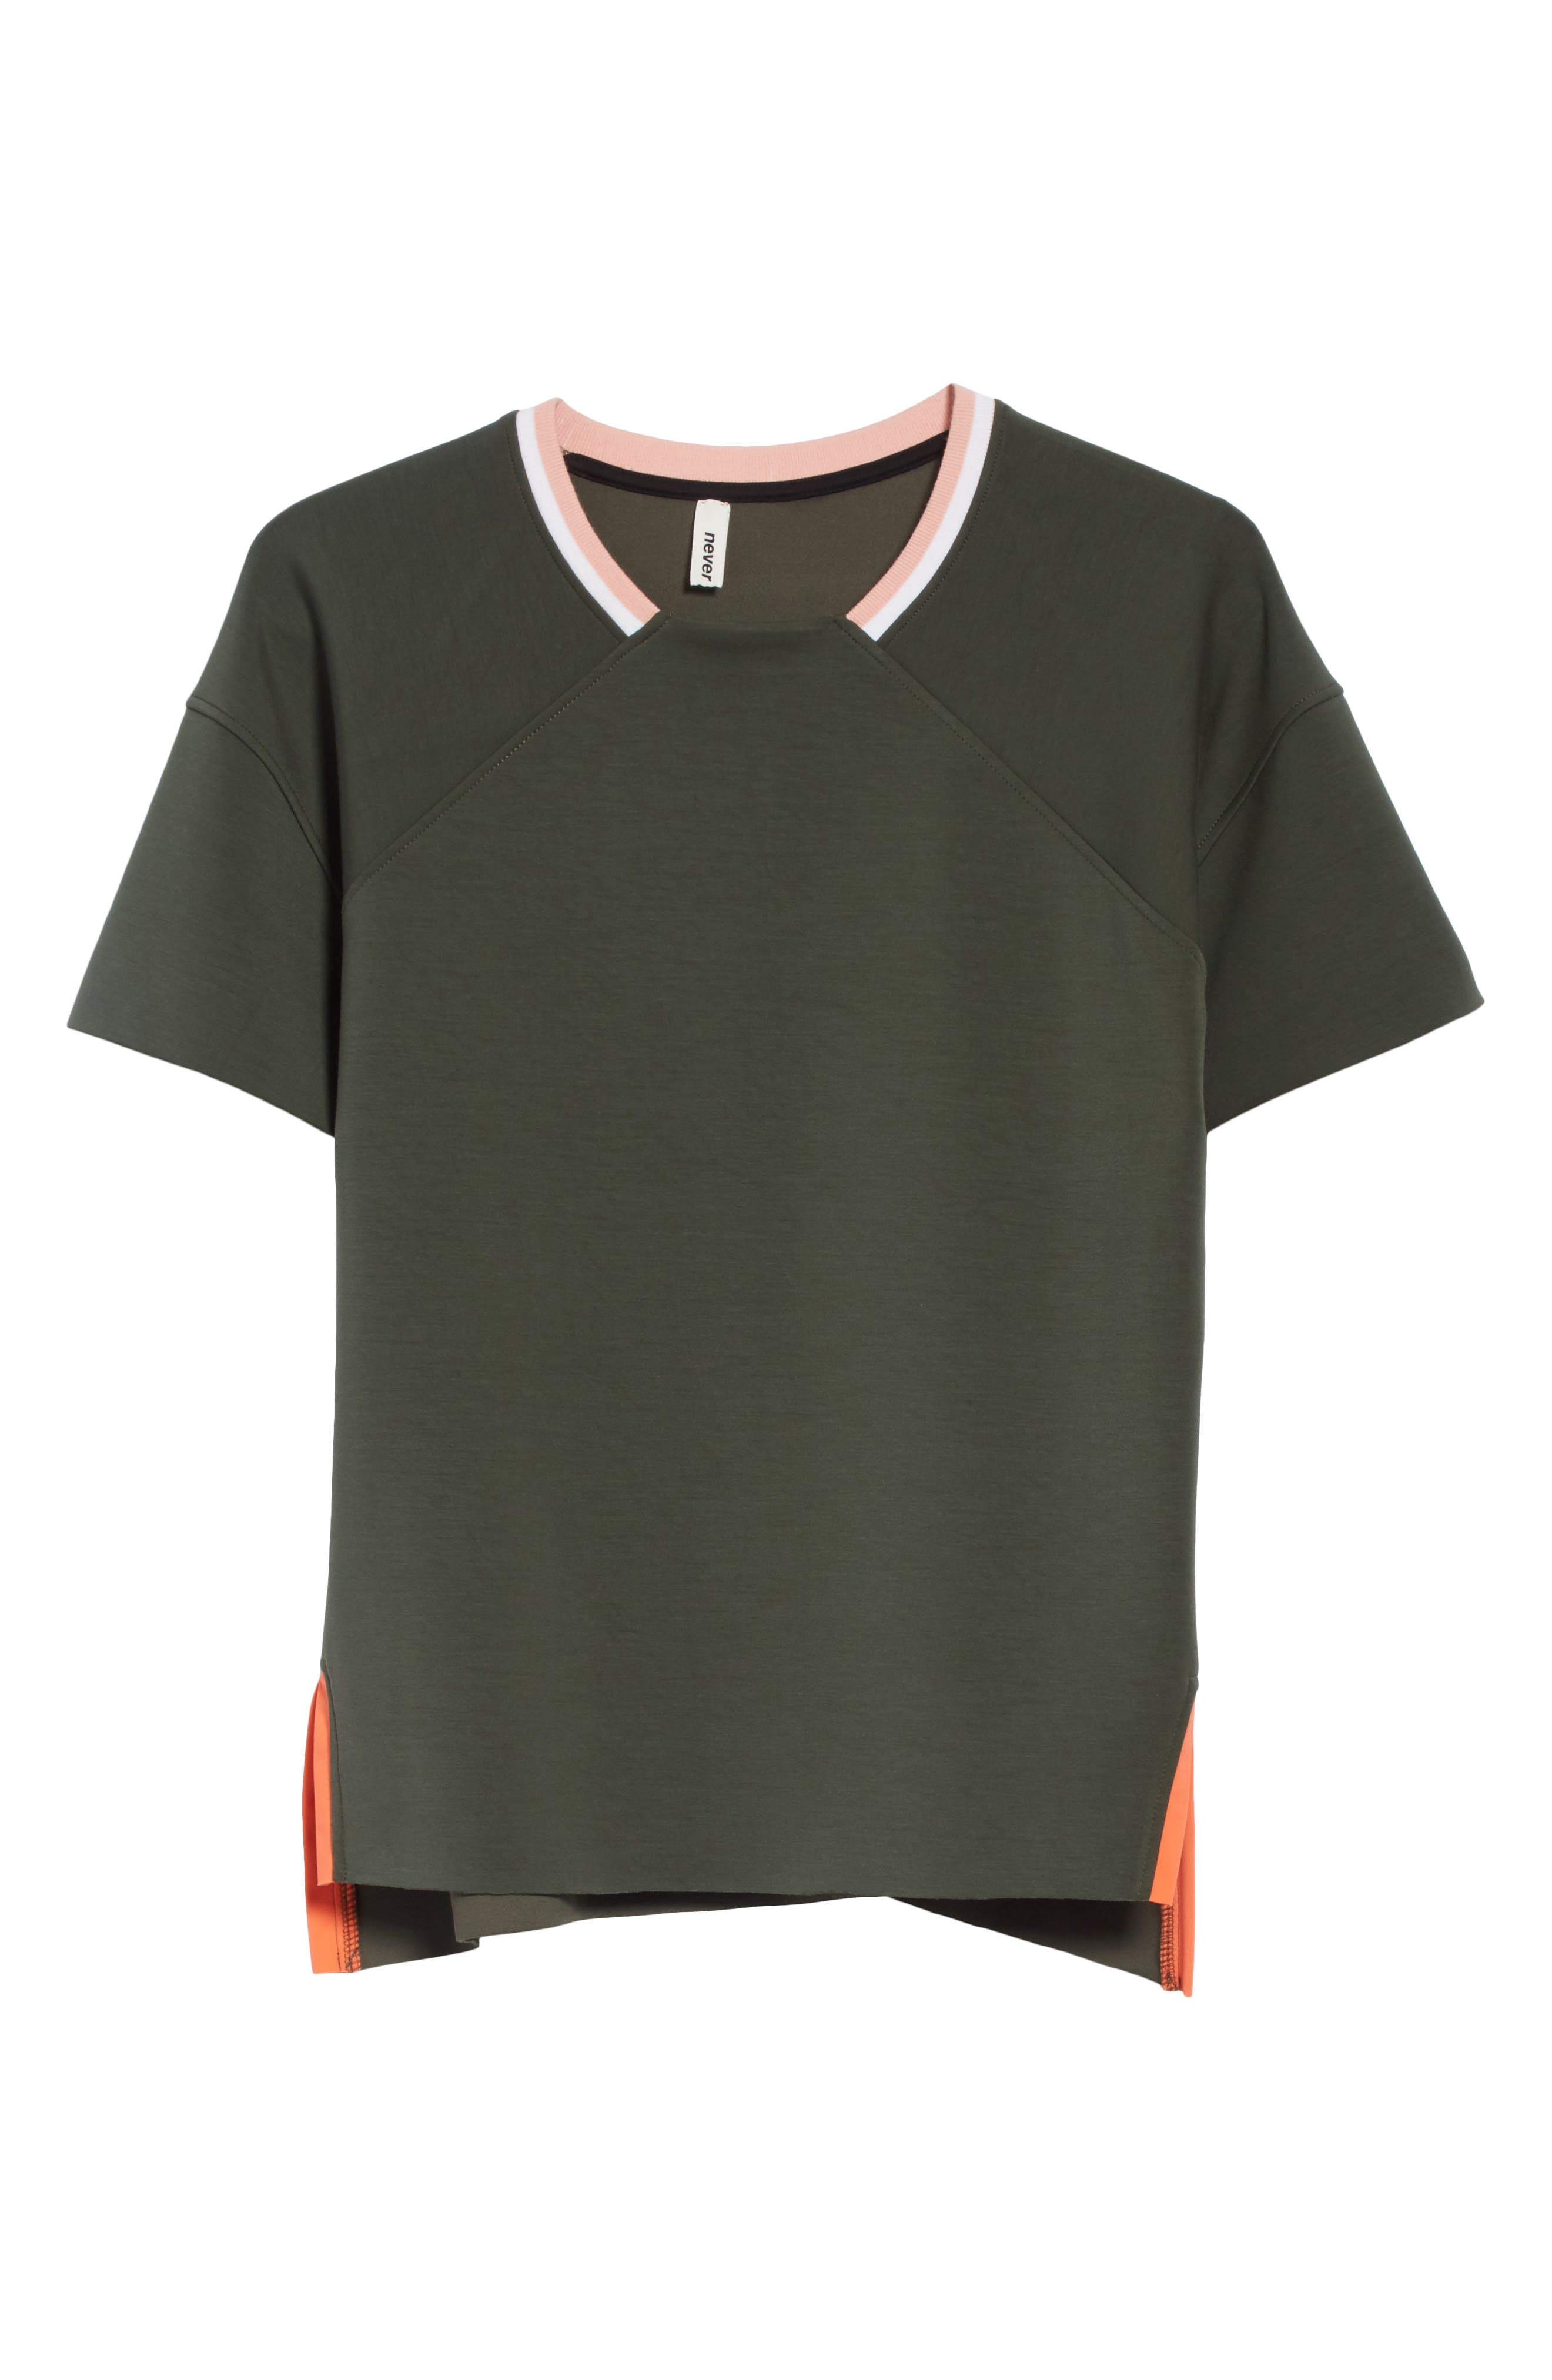 Ringer Raglan Tee,                             Alternate thumbnail 6, color,                             300